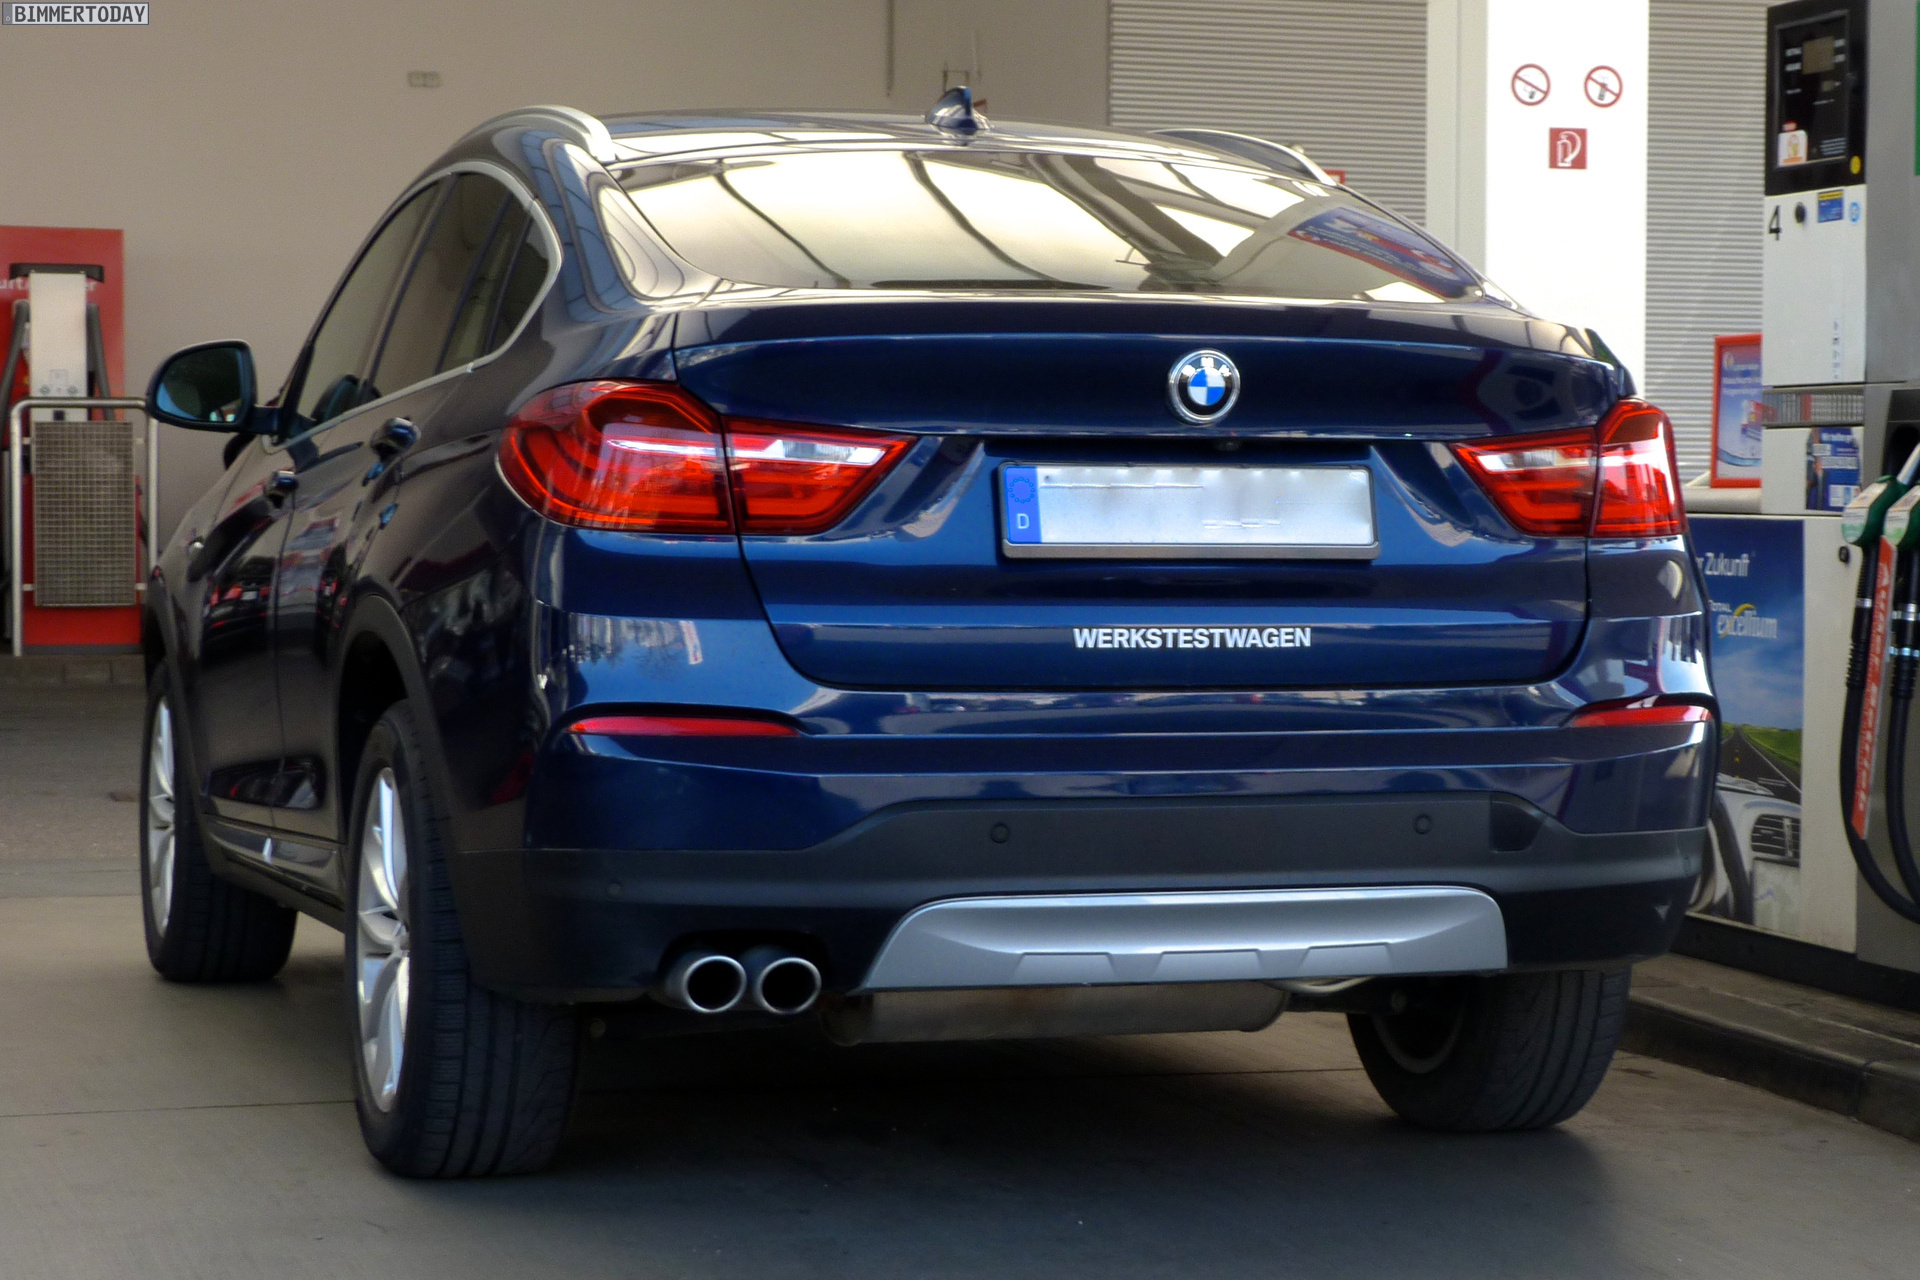 Bmw X4 Xline Caught In The Flesh In Munich Autoevolution